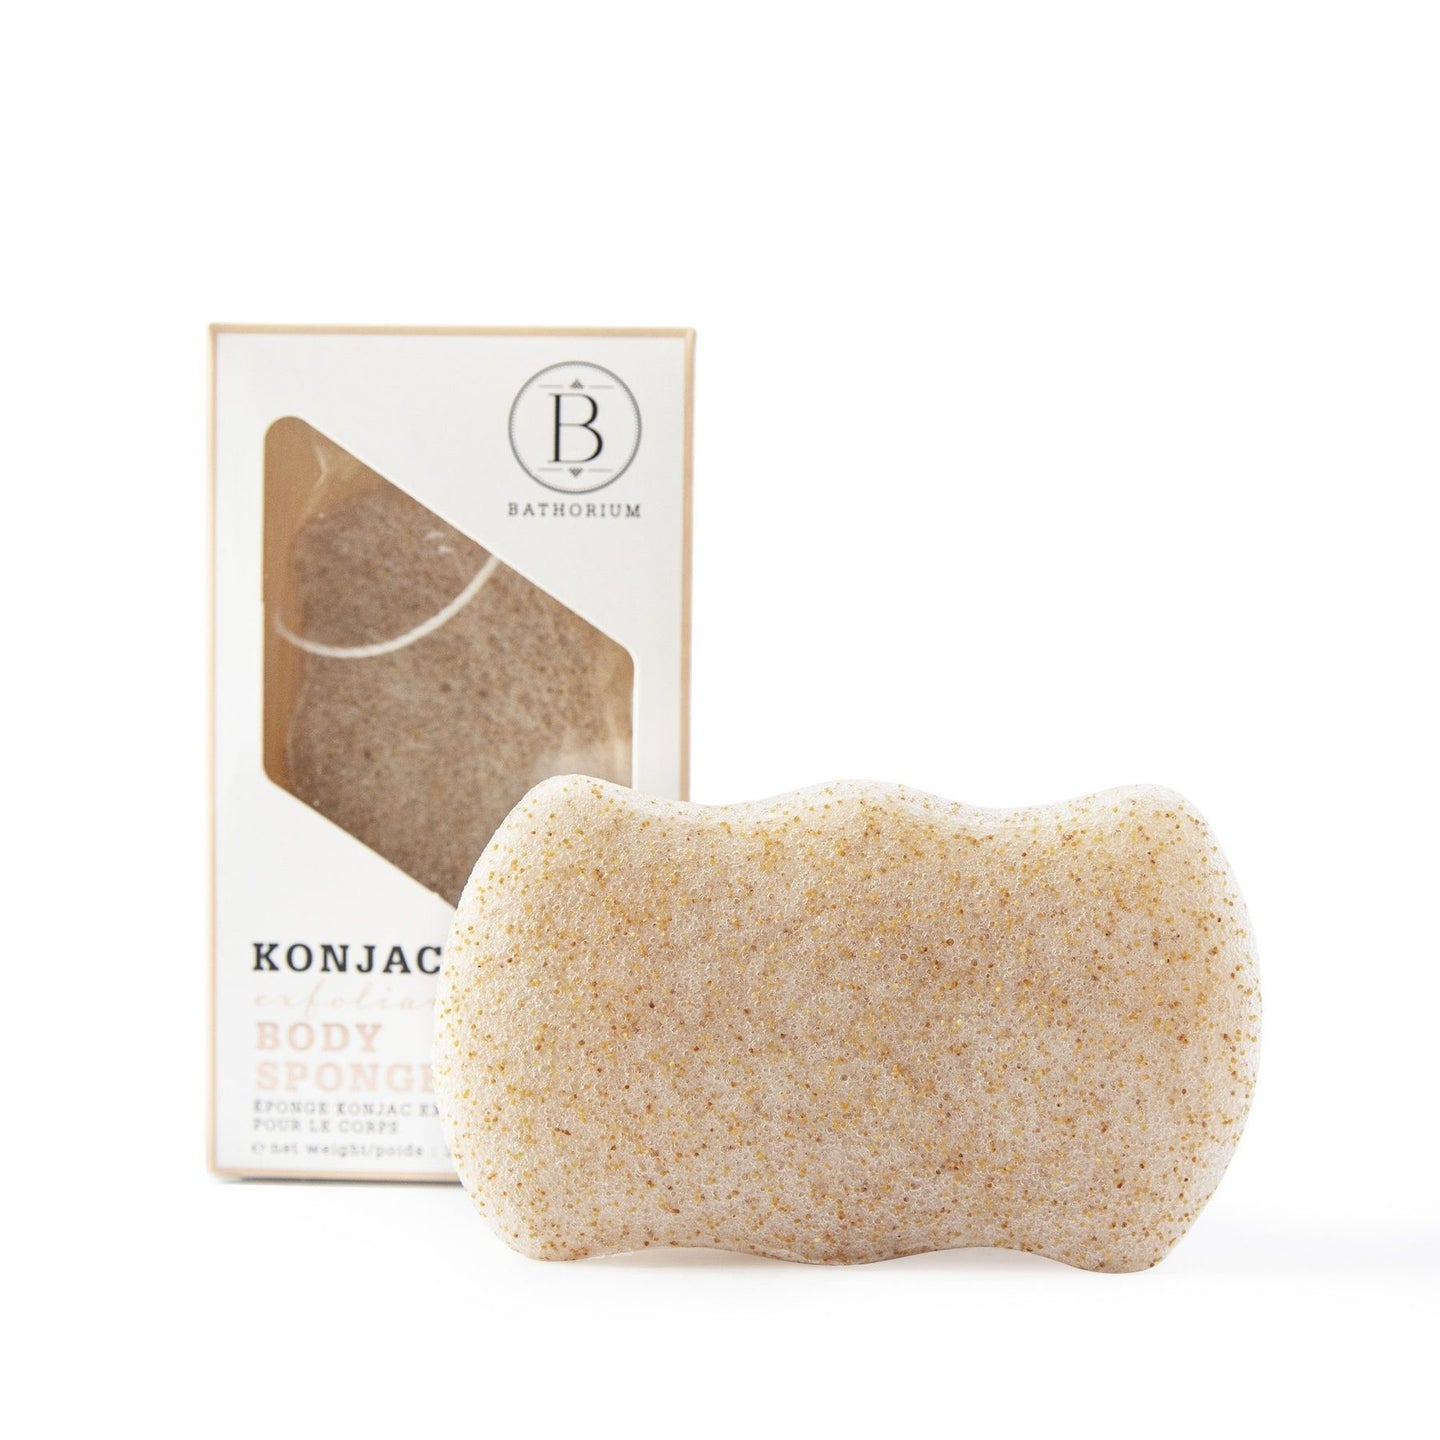 Bathorium Konjac Wallnut Shell Exfoliating Body Sponge at The Summit Spa